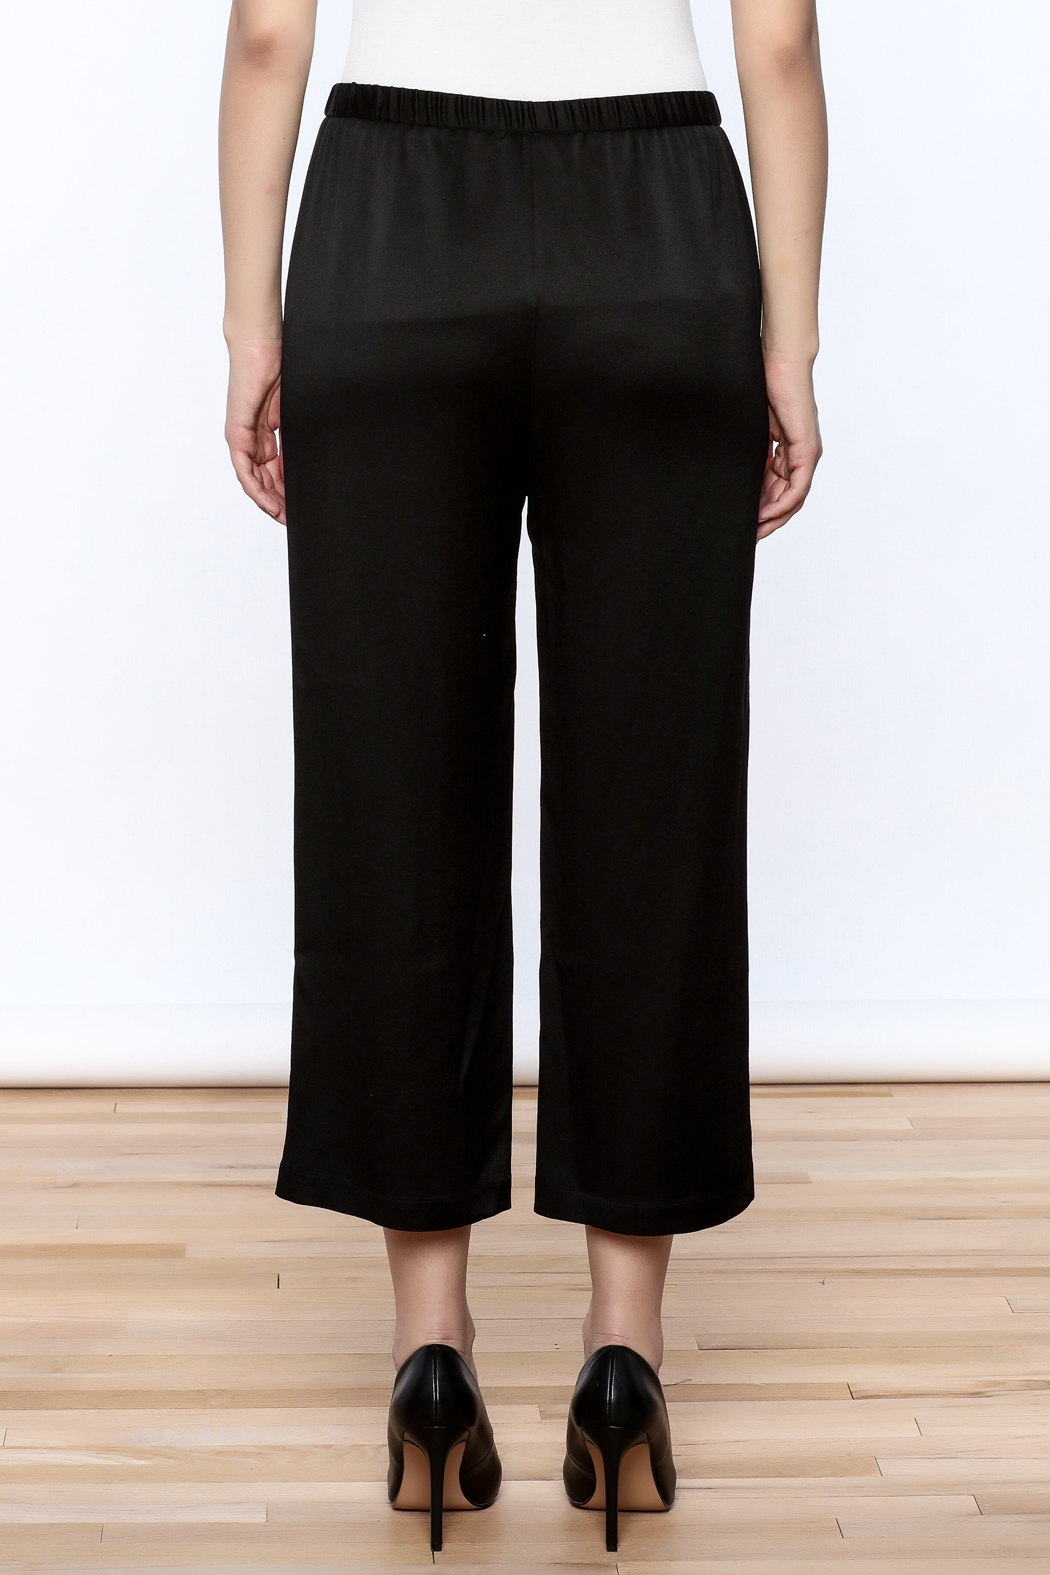 Eileen Fisher Black Silk Pant - Back Cropped Image